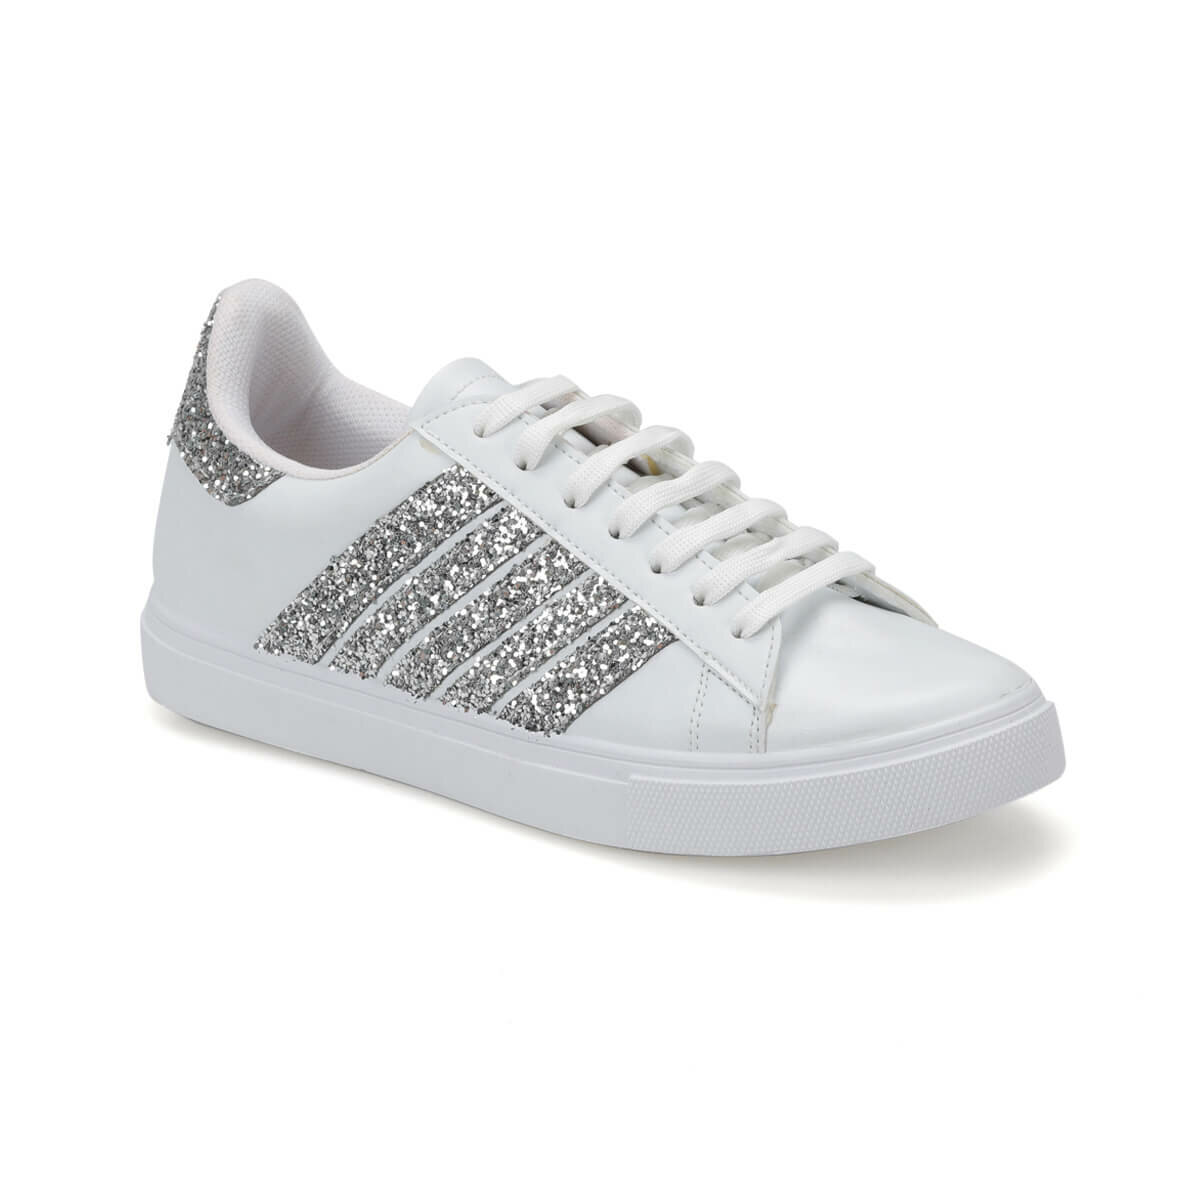 FLO CS19018 White Women 'S Sneaker Shoes Art Bella